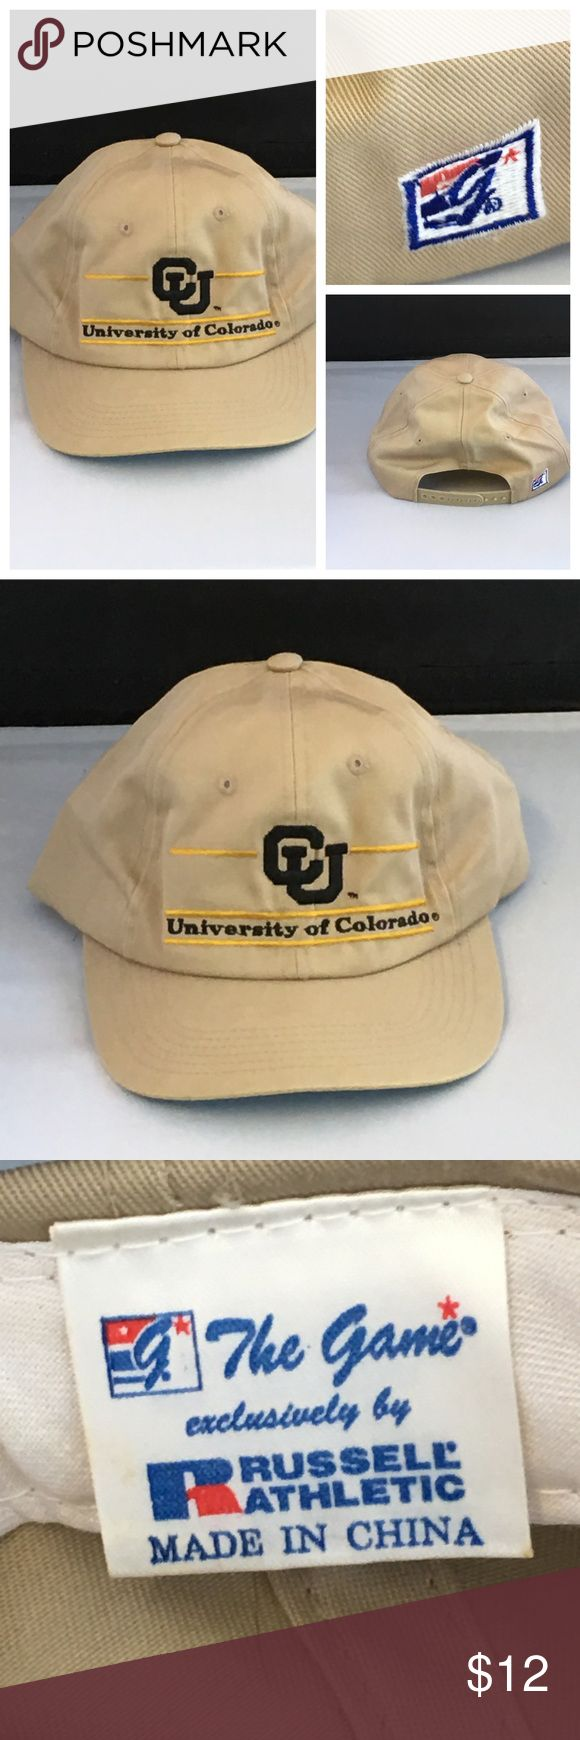 Colorado Vintage SnapBack The Game Cap NWOT University Of Colorado Vintage SnapBack The Game Cap.   Kaki Color   The Game Accessories Hats